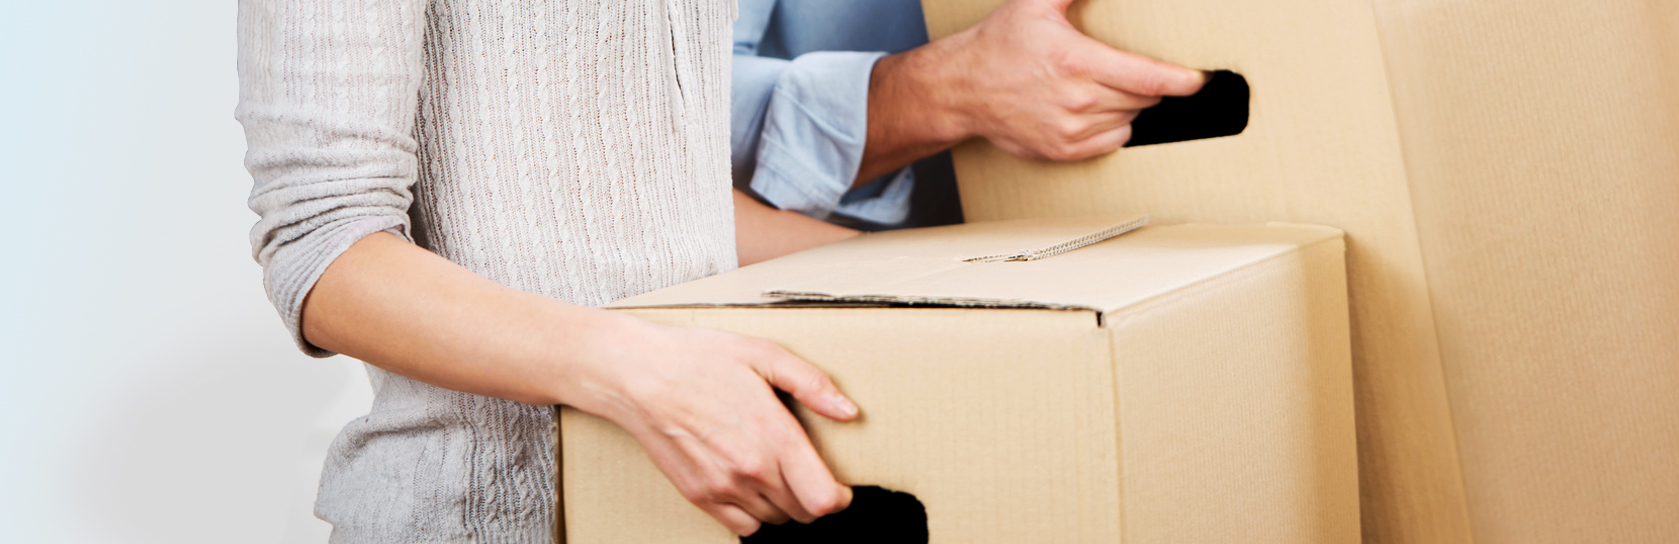 Removals, packing